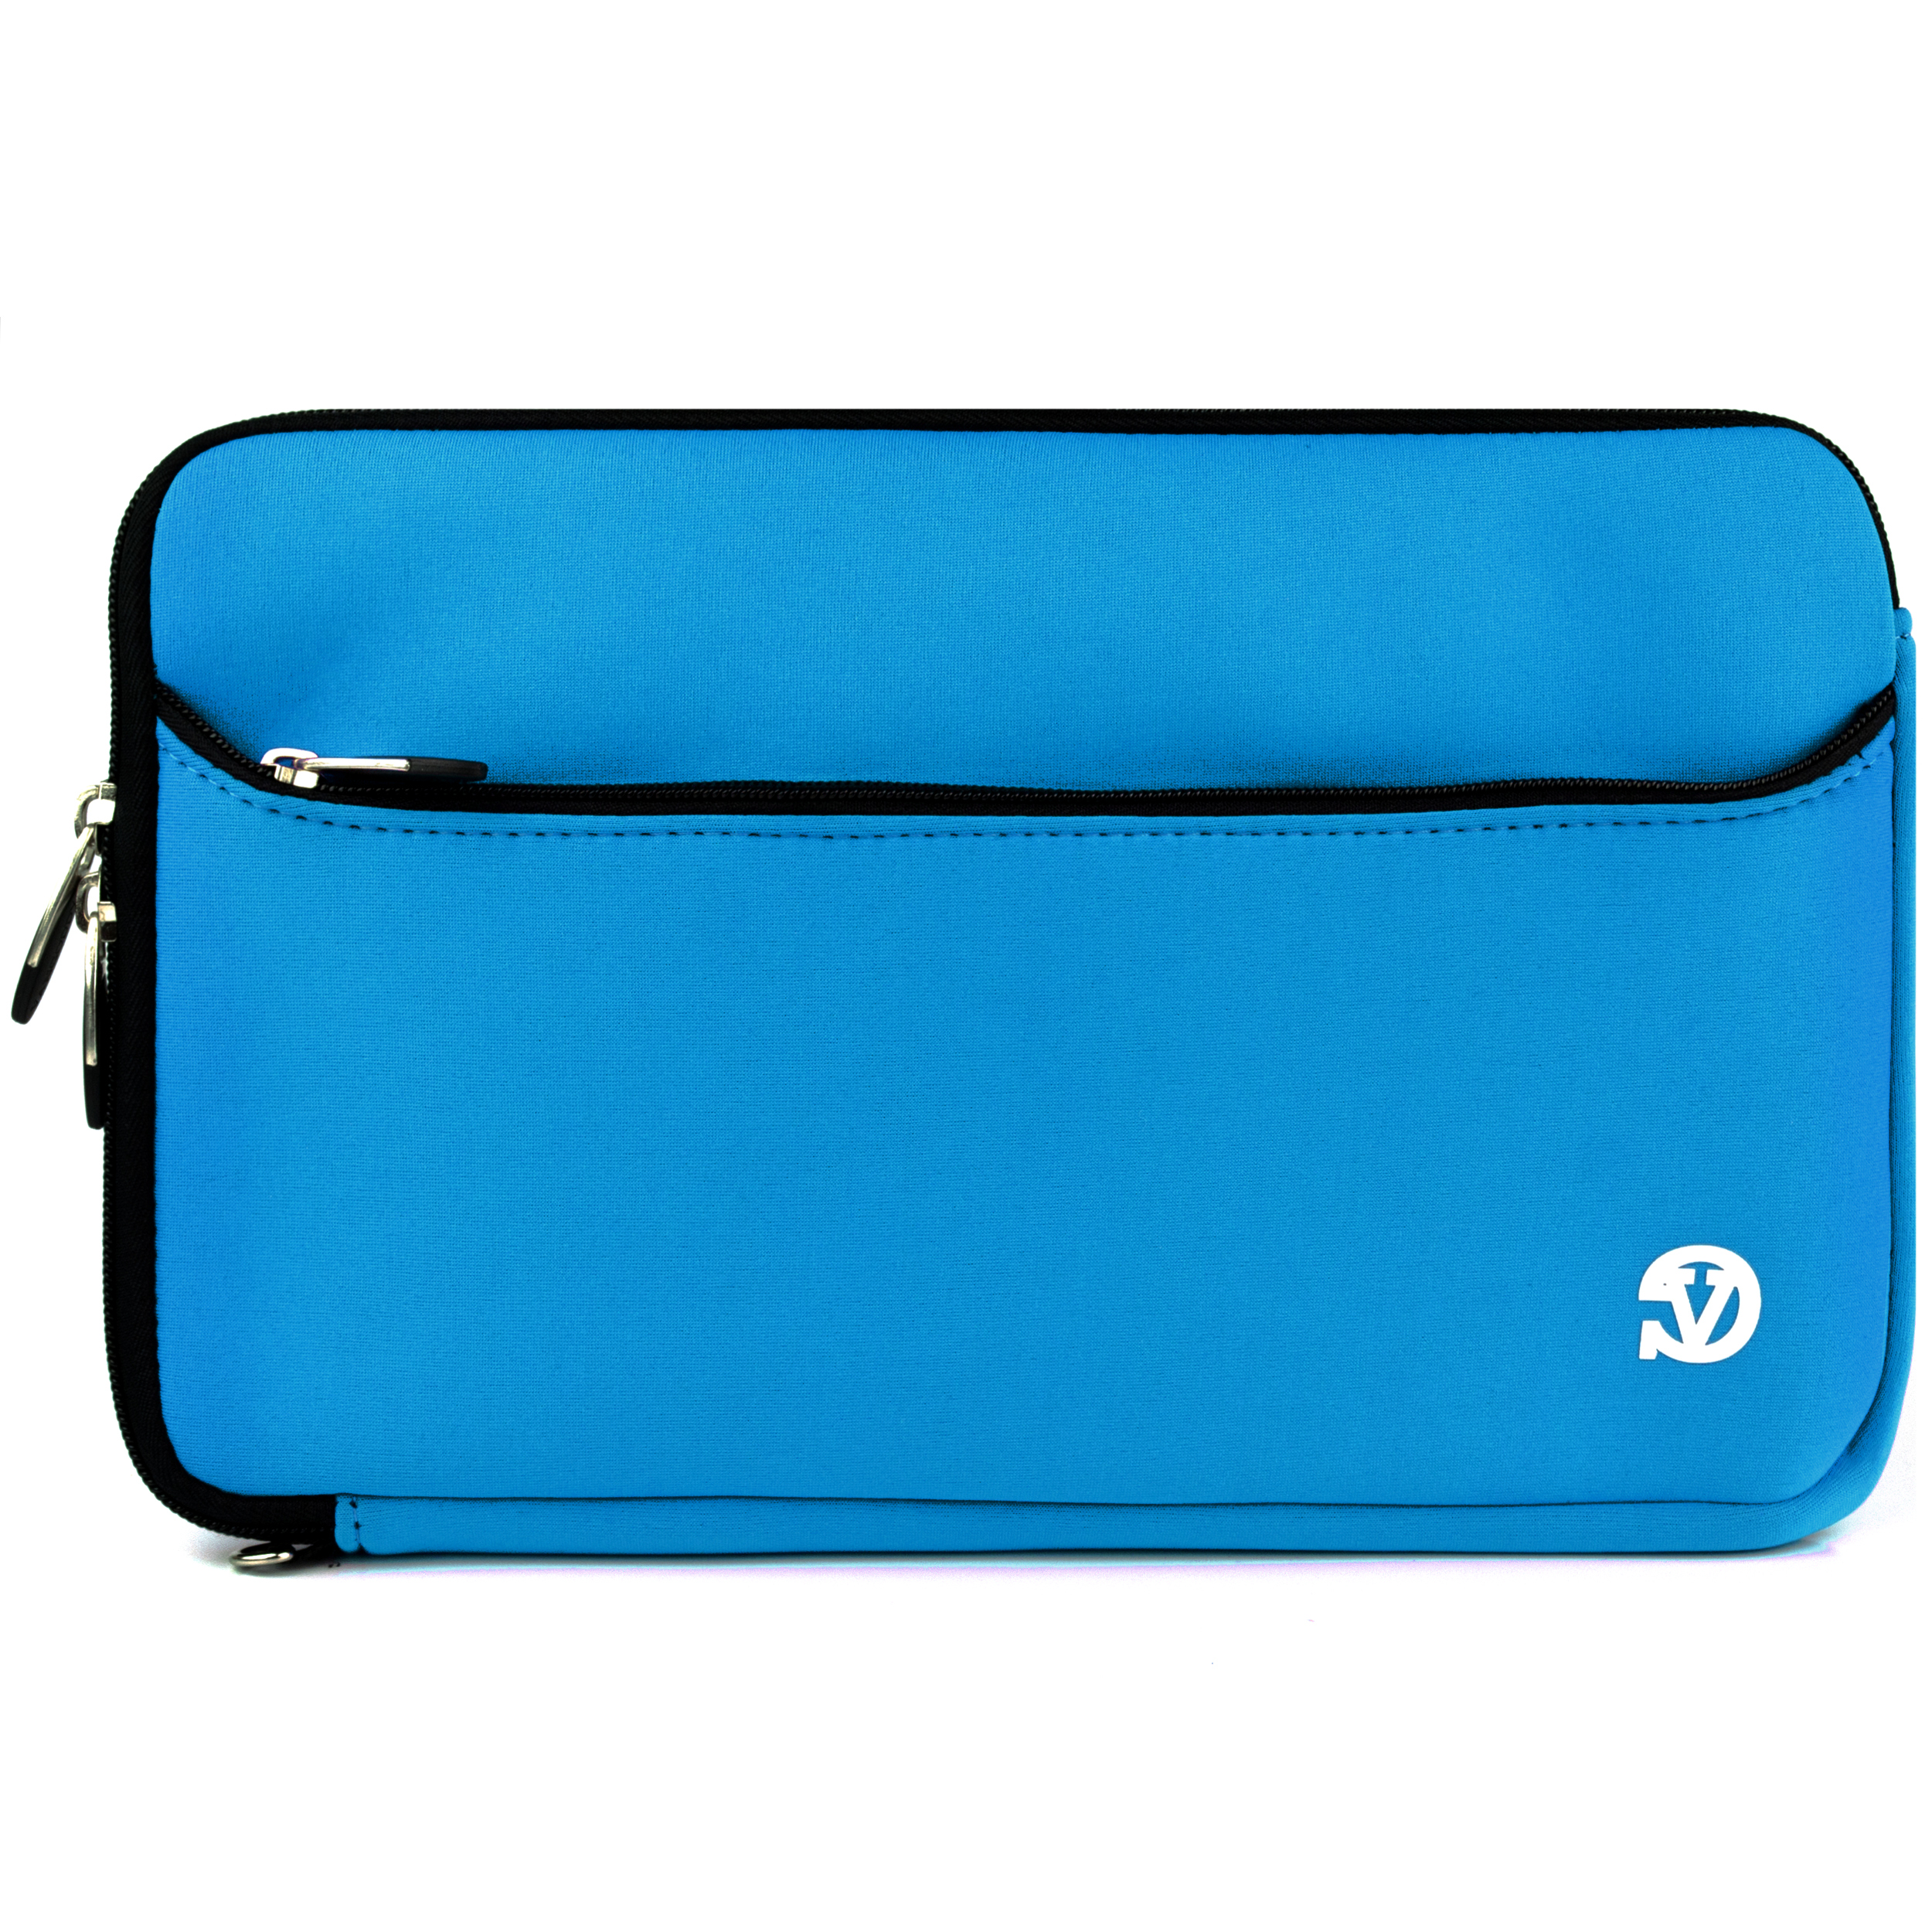 VANGODDY Neoprene Slim Compact Tablet 10, 10.1 inch Carrying Sleeve Cover [Assorted Colors] [Apple, Acer, Asus, HP Samsung, Toshiba, etc]